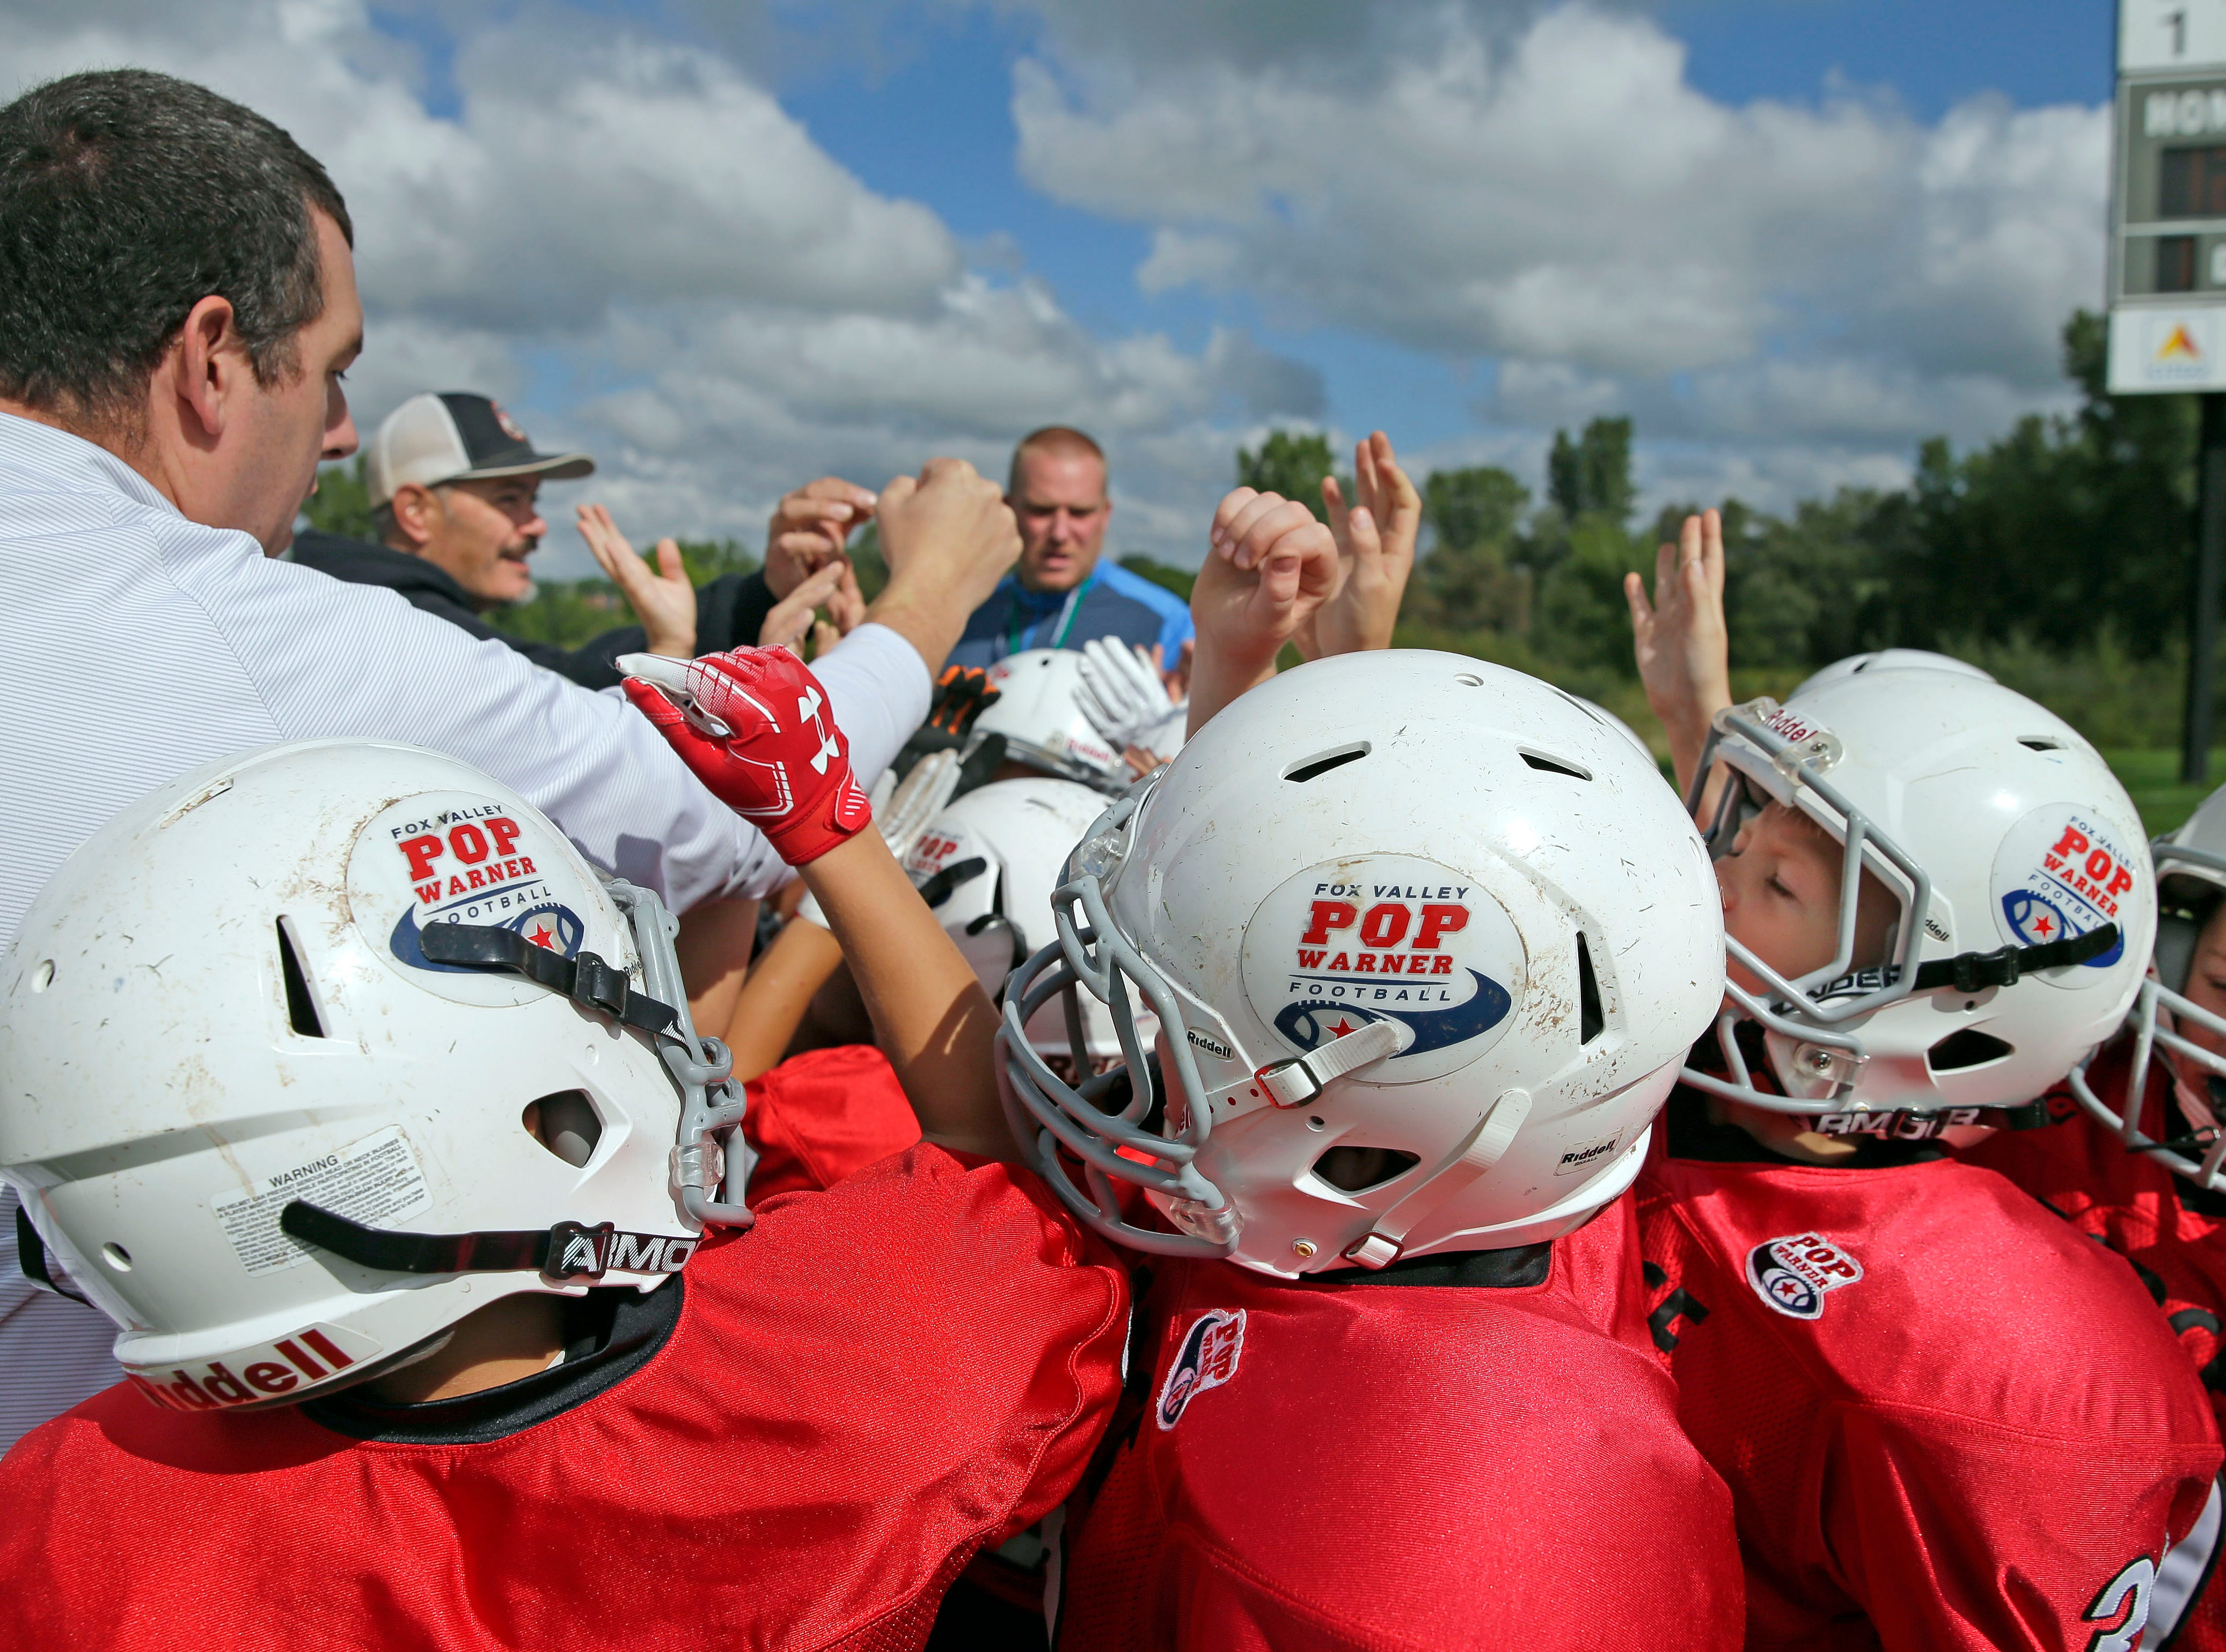 The Force gets ready to take the field as Fox Valley Pop Warner Football opens the season Saturday, September 8, 2018, at Plamann Park in Grand Chute, Wis.Ron Page/USA TODAY NETWORK-Wisconsin